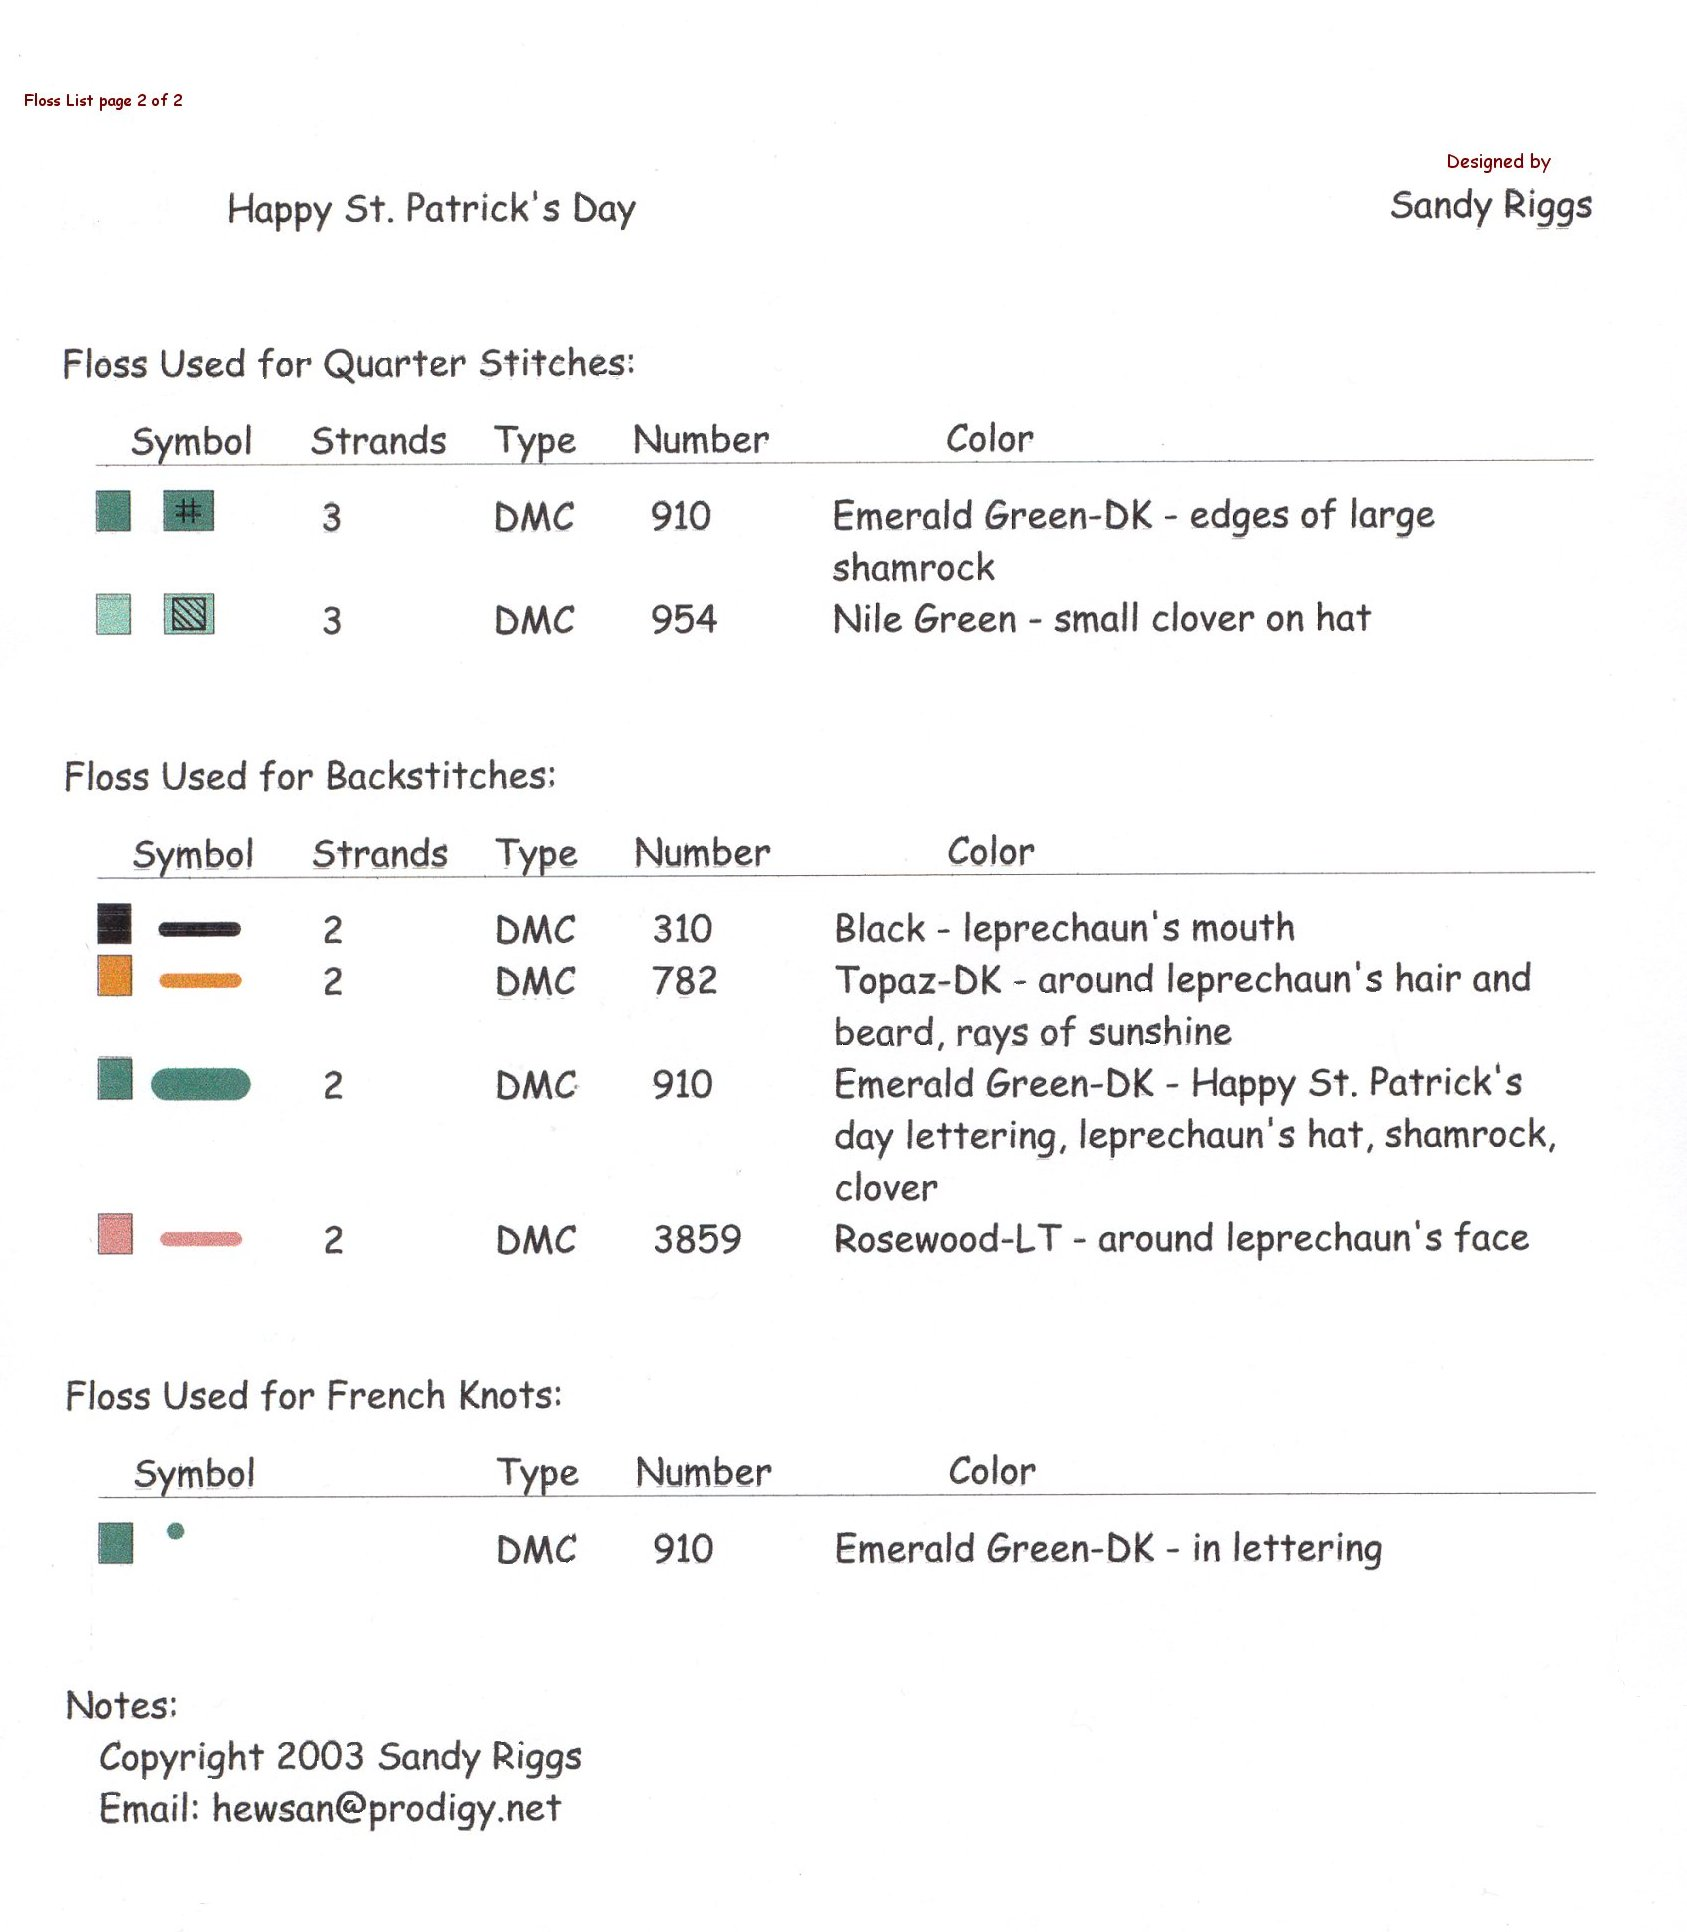 st. patrick's day cross stitch floss list page 2 of 2